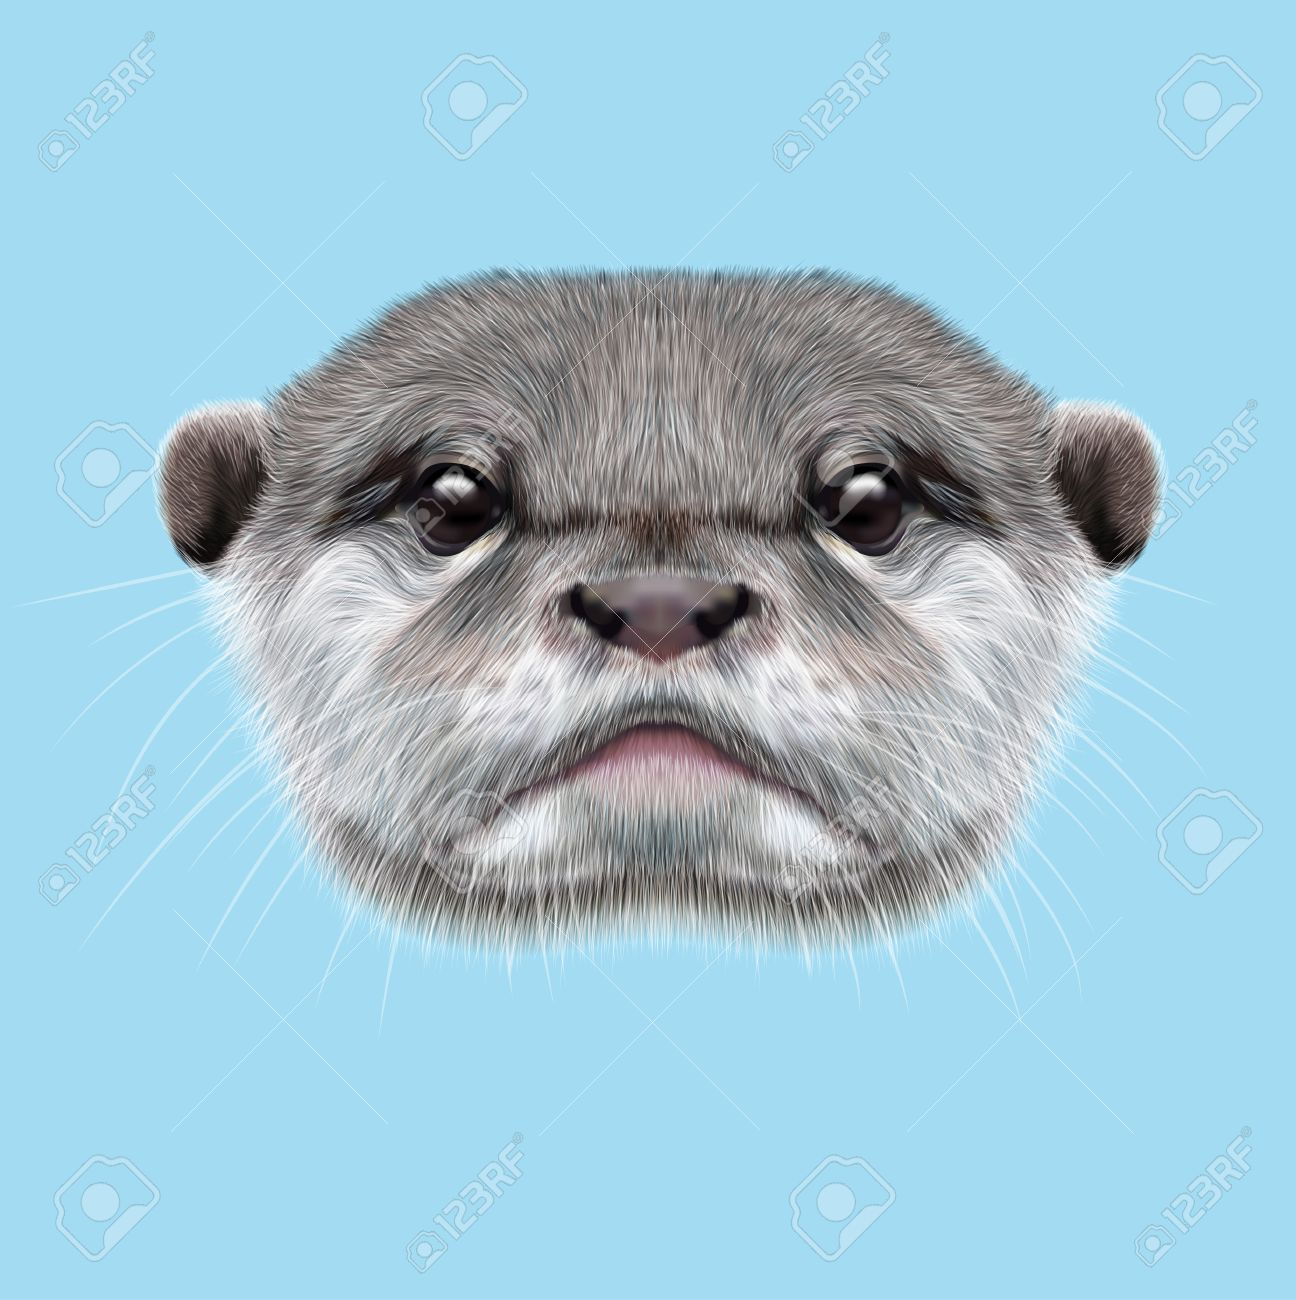 Cute otter face over blue